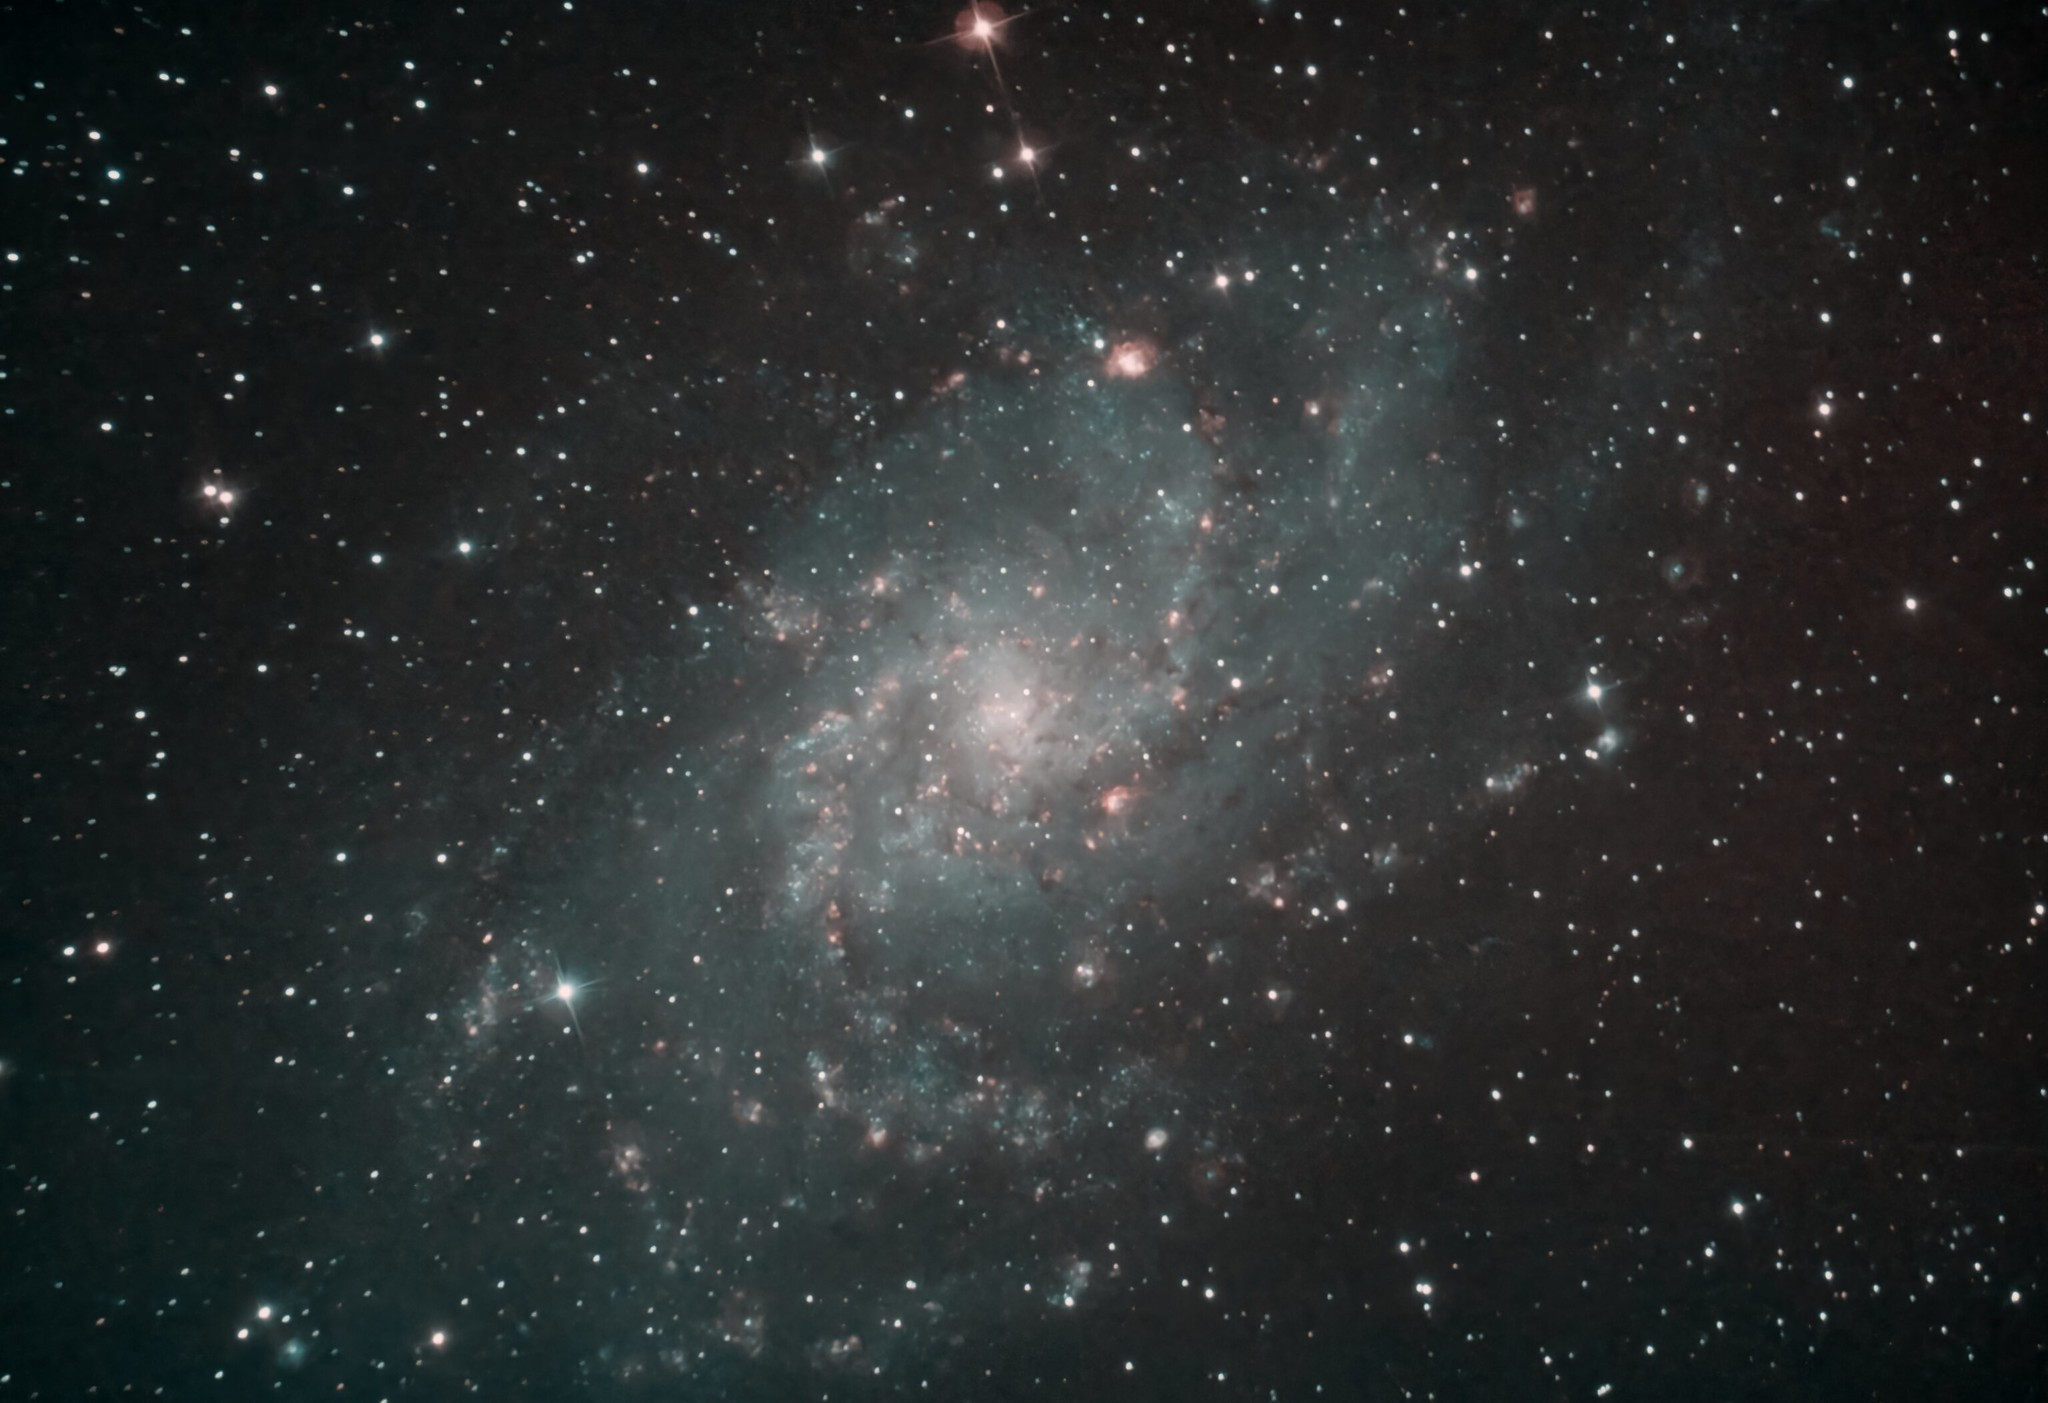 M33 Ian Smith Skywatcher 200p, NEQ6 mount, Altair Triband filter, Baader MPCC M3 coma corrector, ASI294MC Pro